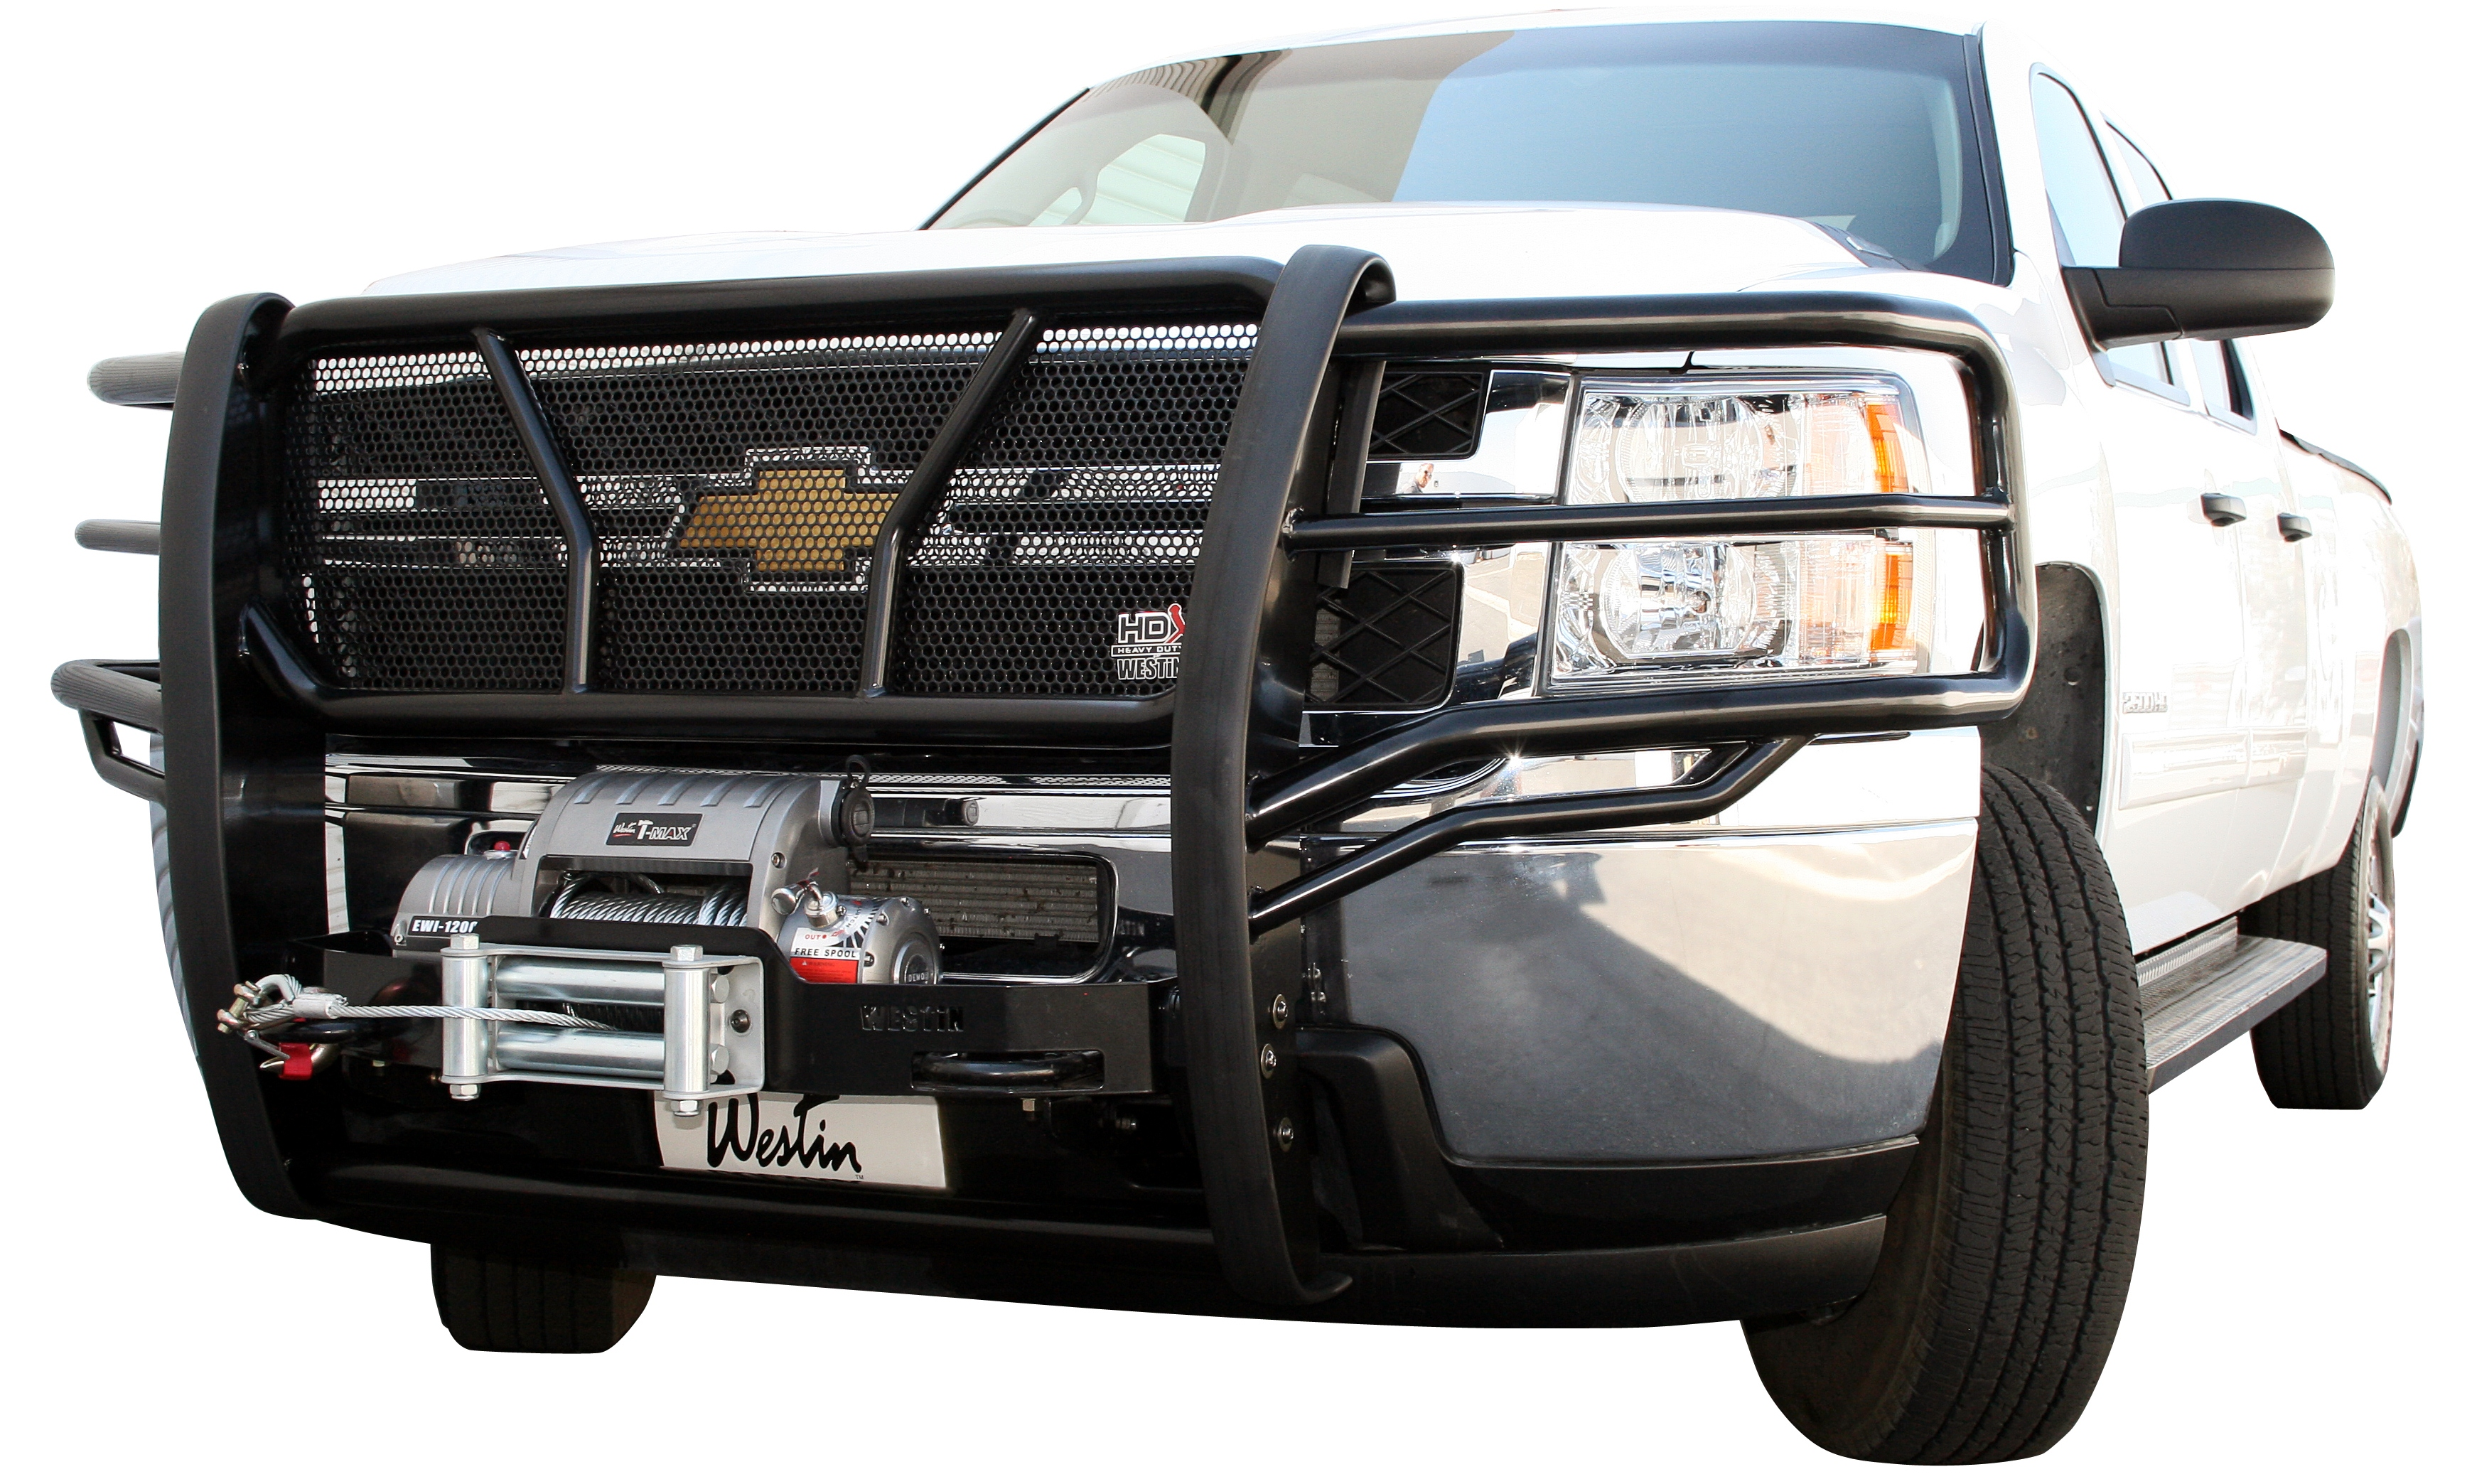 Truck Grill Guards And Bumpers : Westin hdx winch mount grille guards heavy duty truck